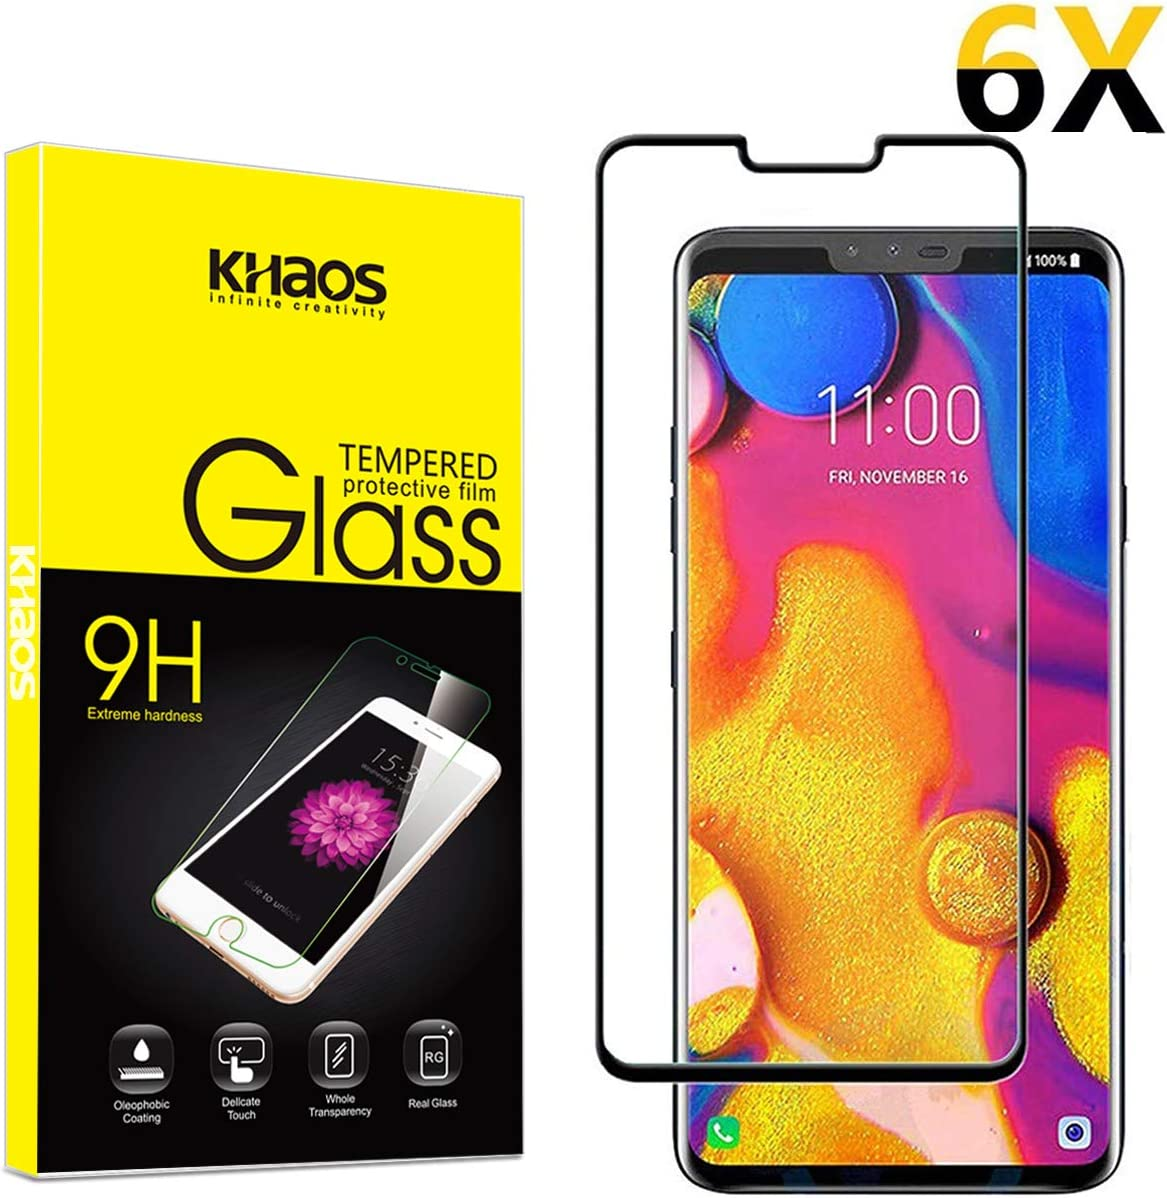 6-Pack Black for LG V40 thinq Screen Protector, KHAOS Full Cover Tempered Glass Screen Protector 9H HD-Clear Ant-Scratch Glass Protector